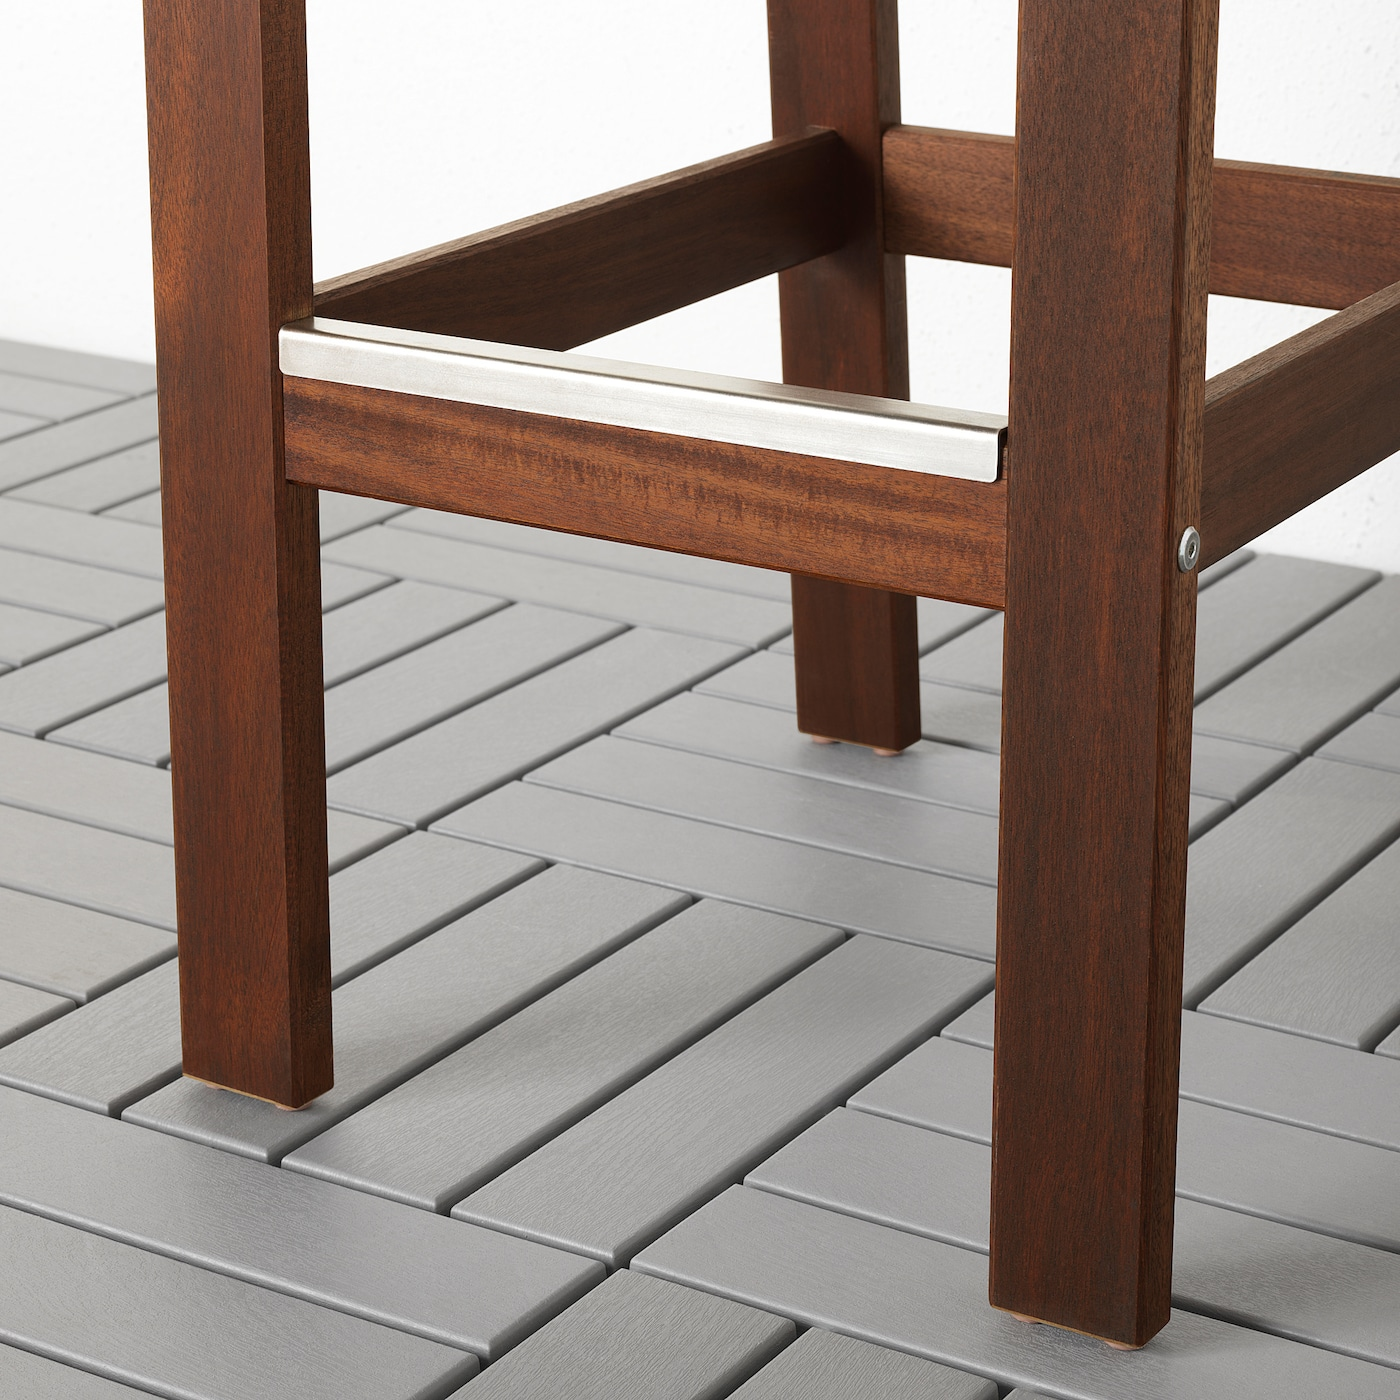 Applaro Bar Stool With Backrest Outdoor Brown Stained Ikea